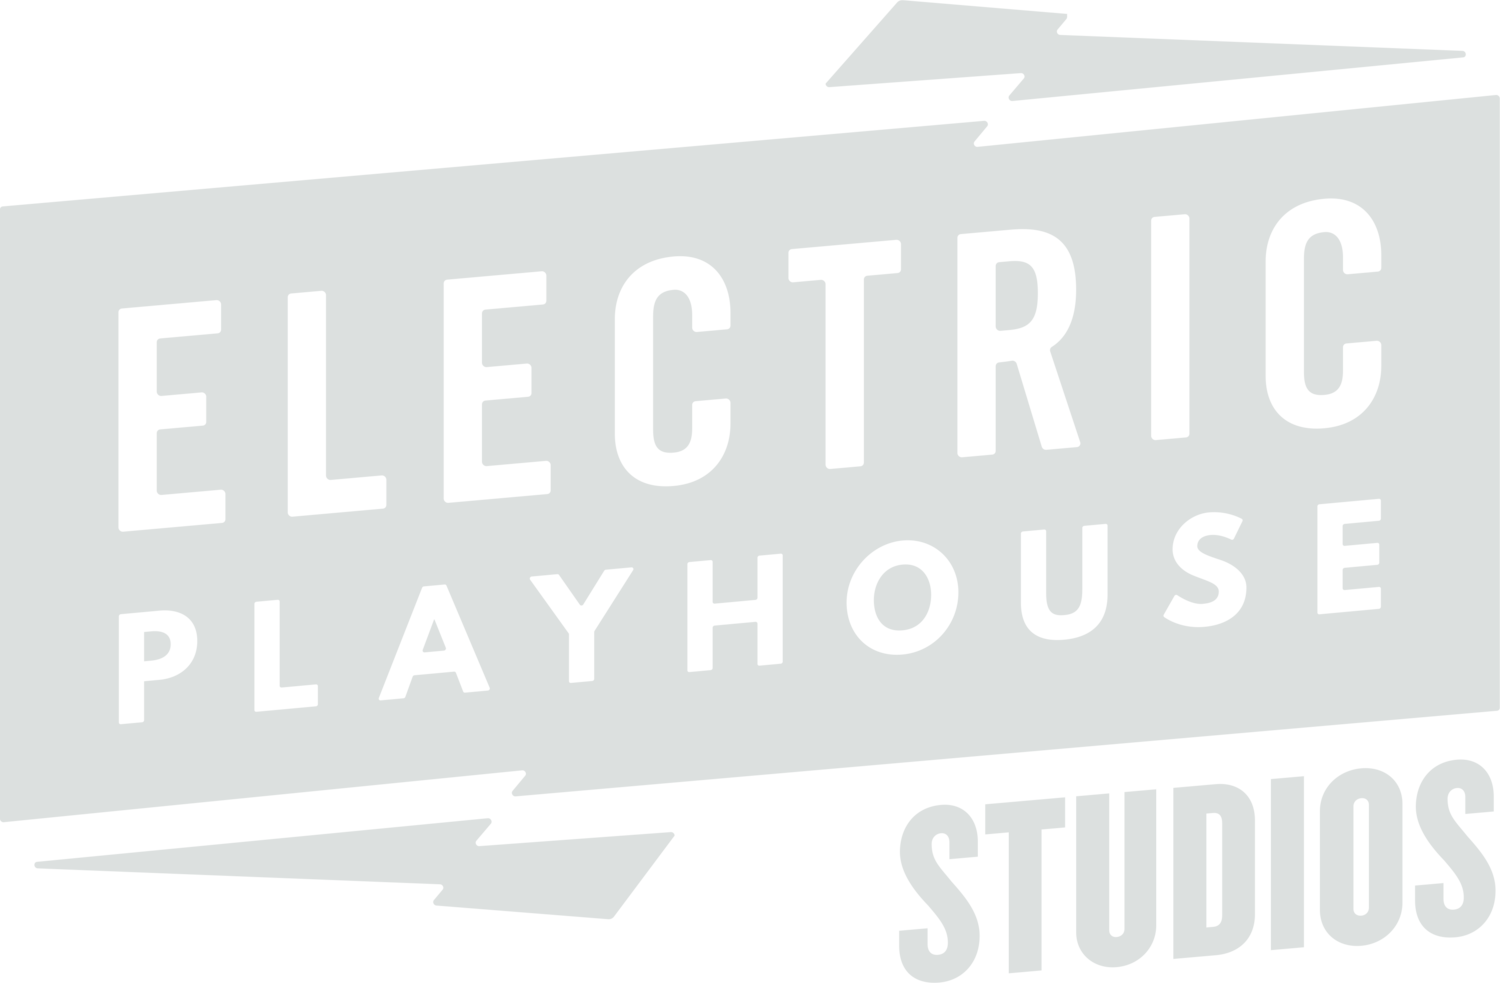 Electric Playhouse Studios